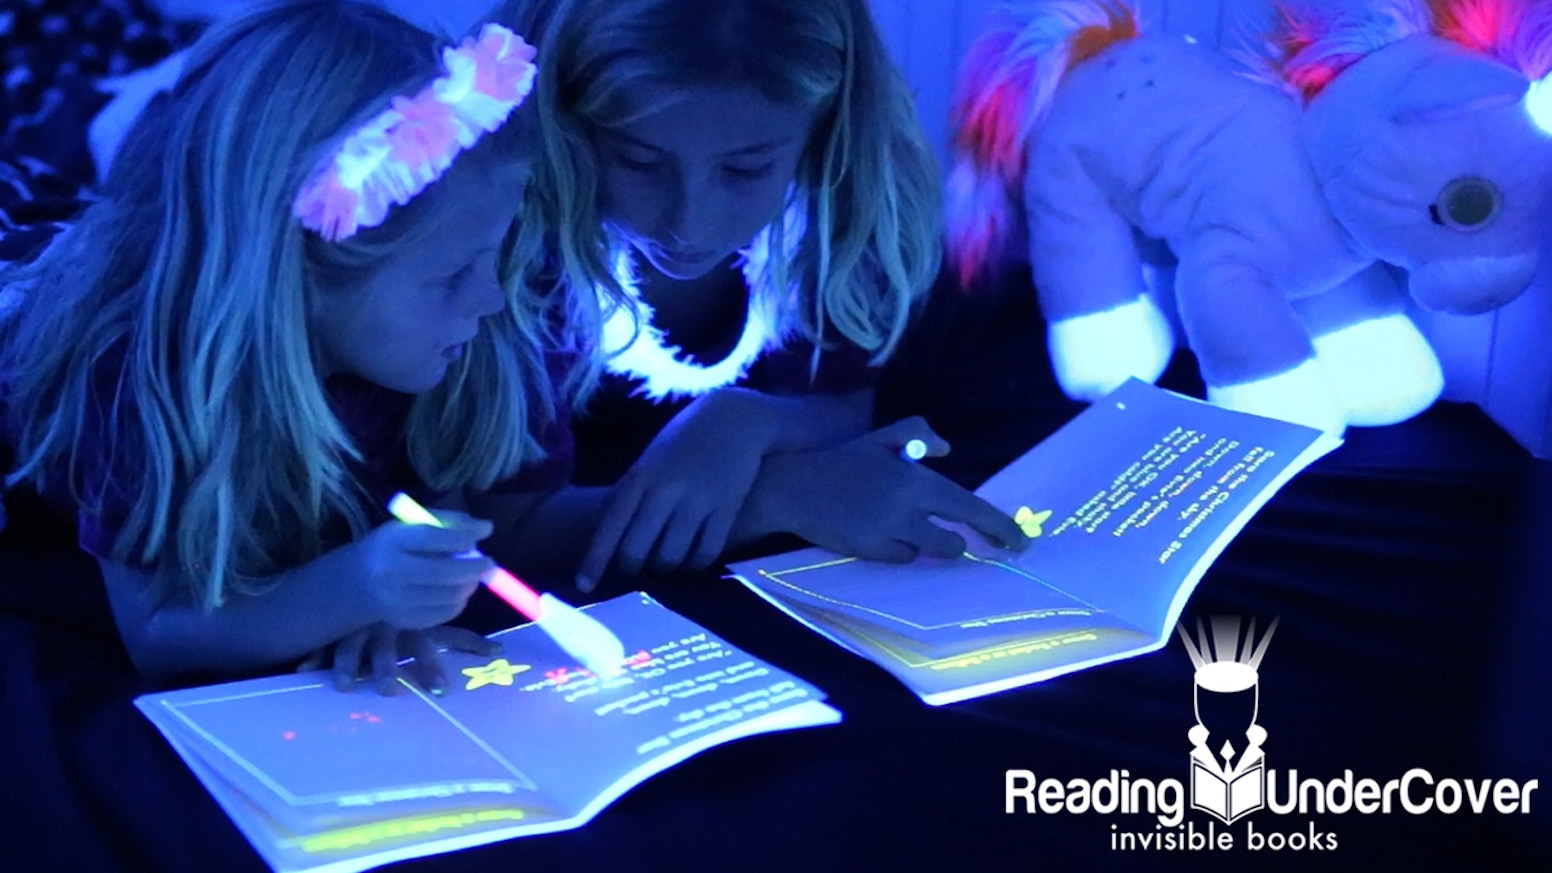 Reading Undercover Childrens Activity Book Invisible Ink By Tinta 680 Colour The Worlds First Kids In With Great Stories A Top